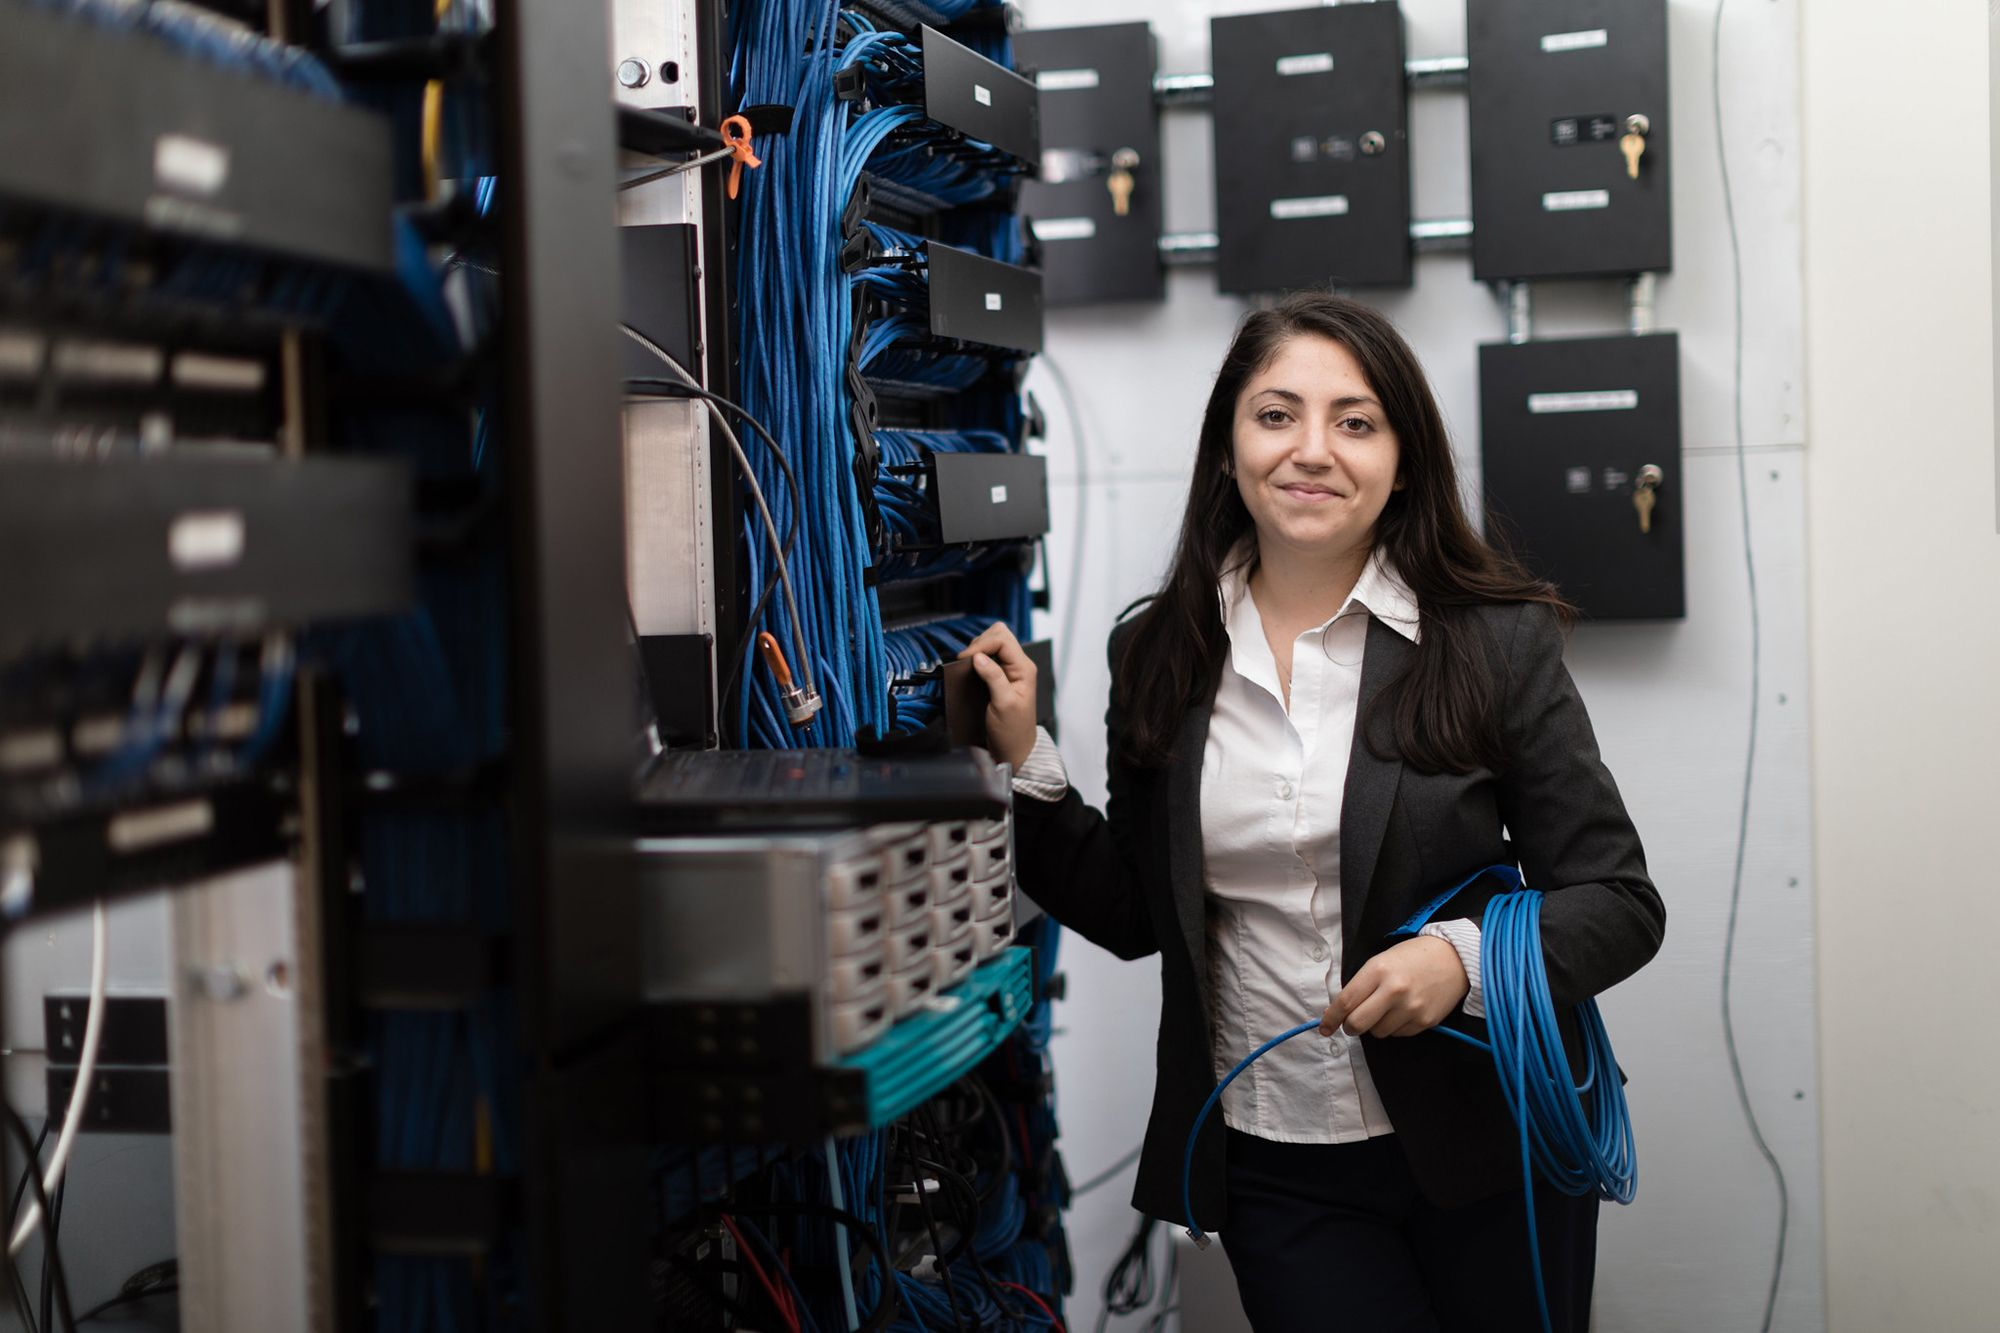 A computer science alumn standing in front of a server rack filled with switches holding blue LAN cabling.